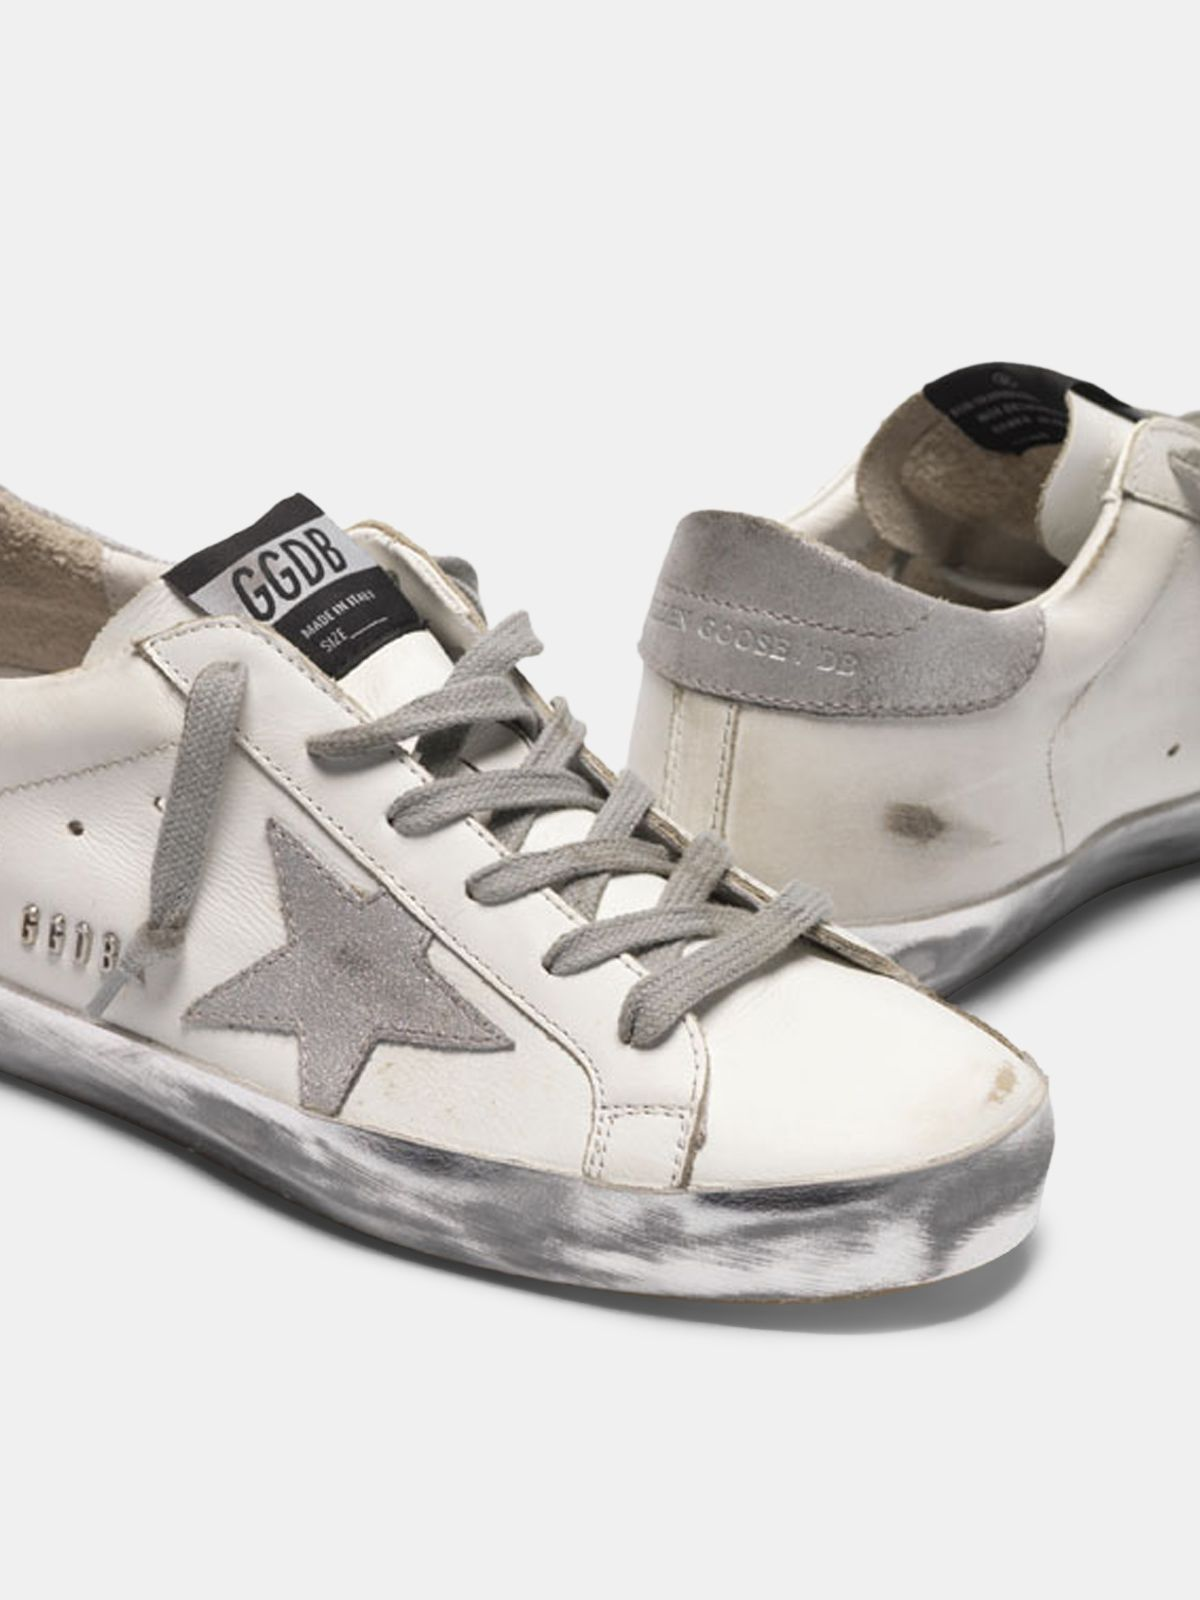 Golden Goose - Sneakers Super-Star con foxing sparkle argento e metal studs lettering in